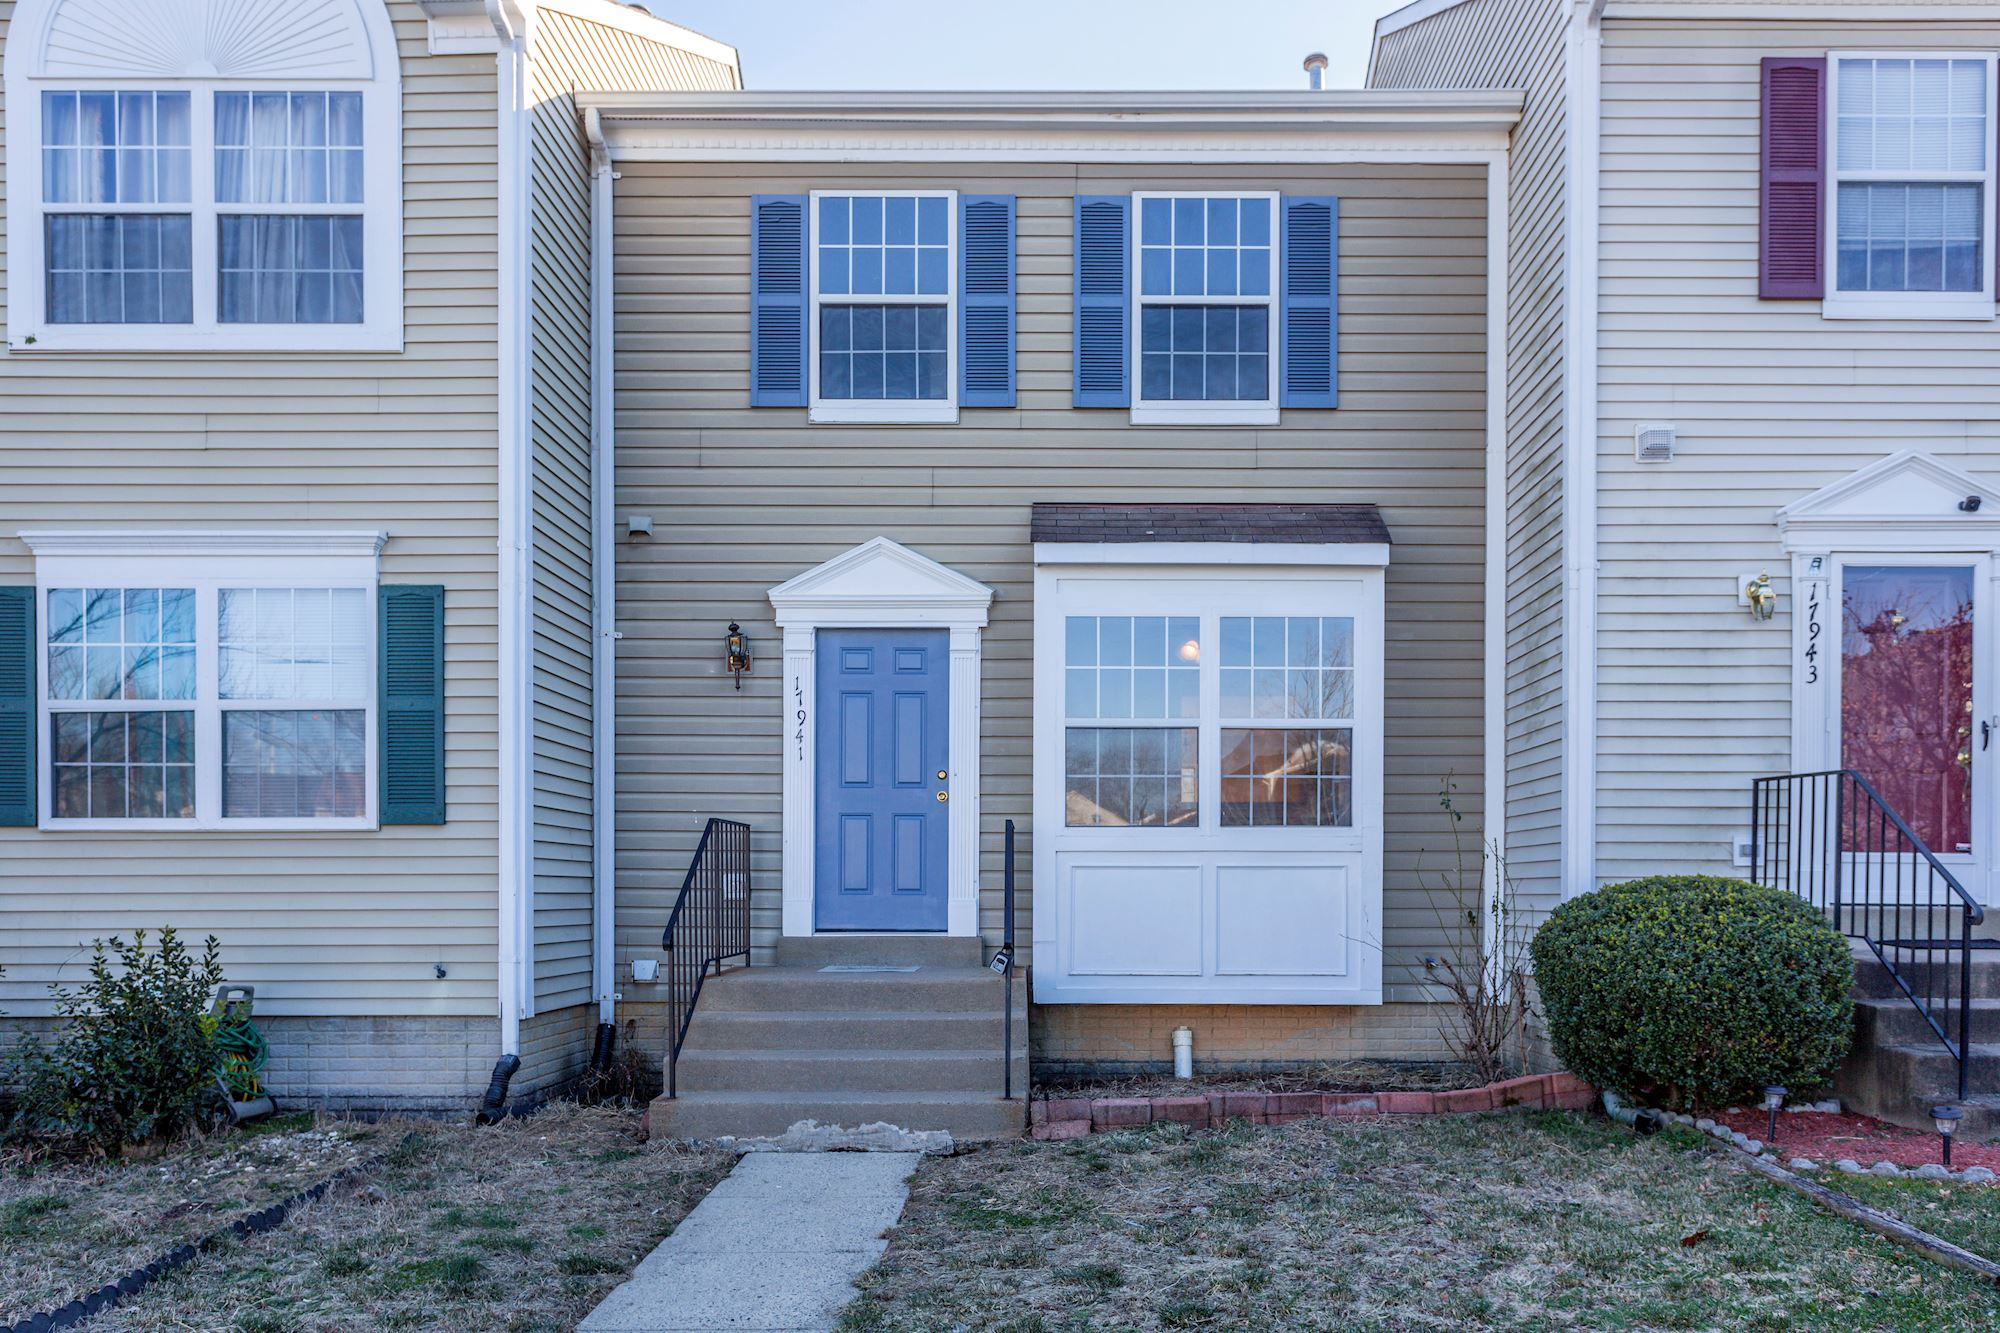 SOLD: 3 BD Fantastic Townhome in Dumfries, VA